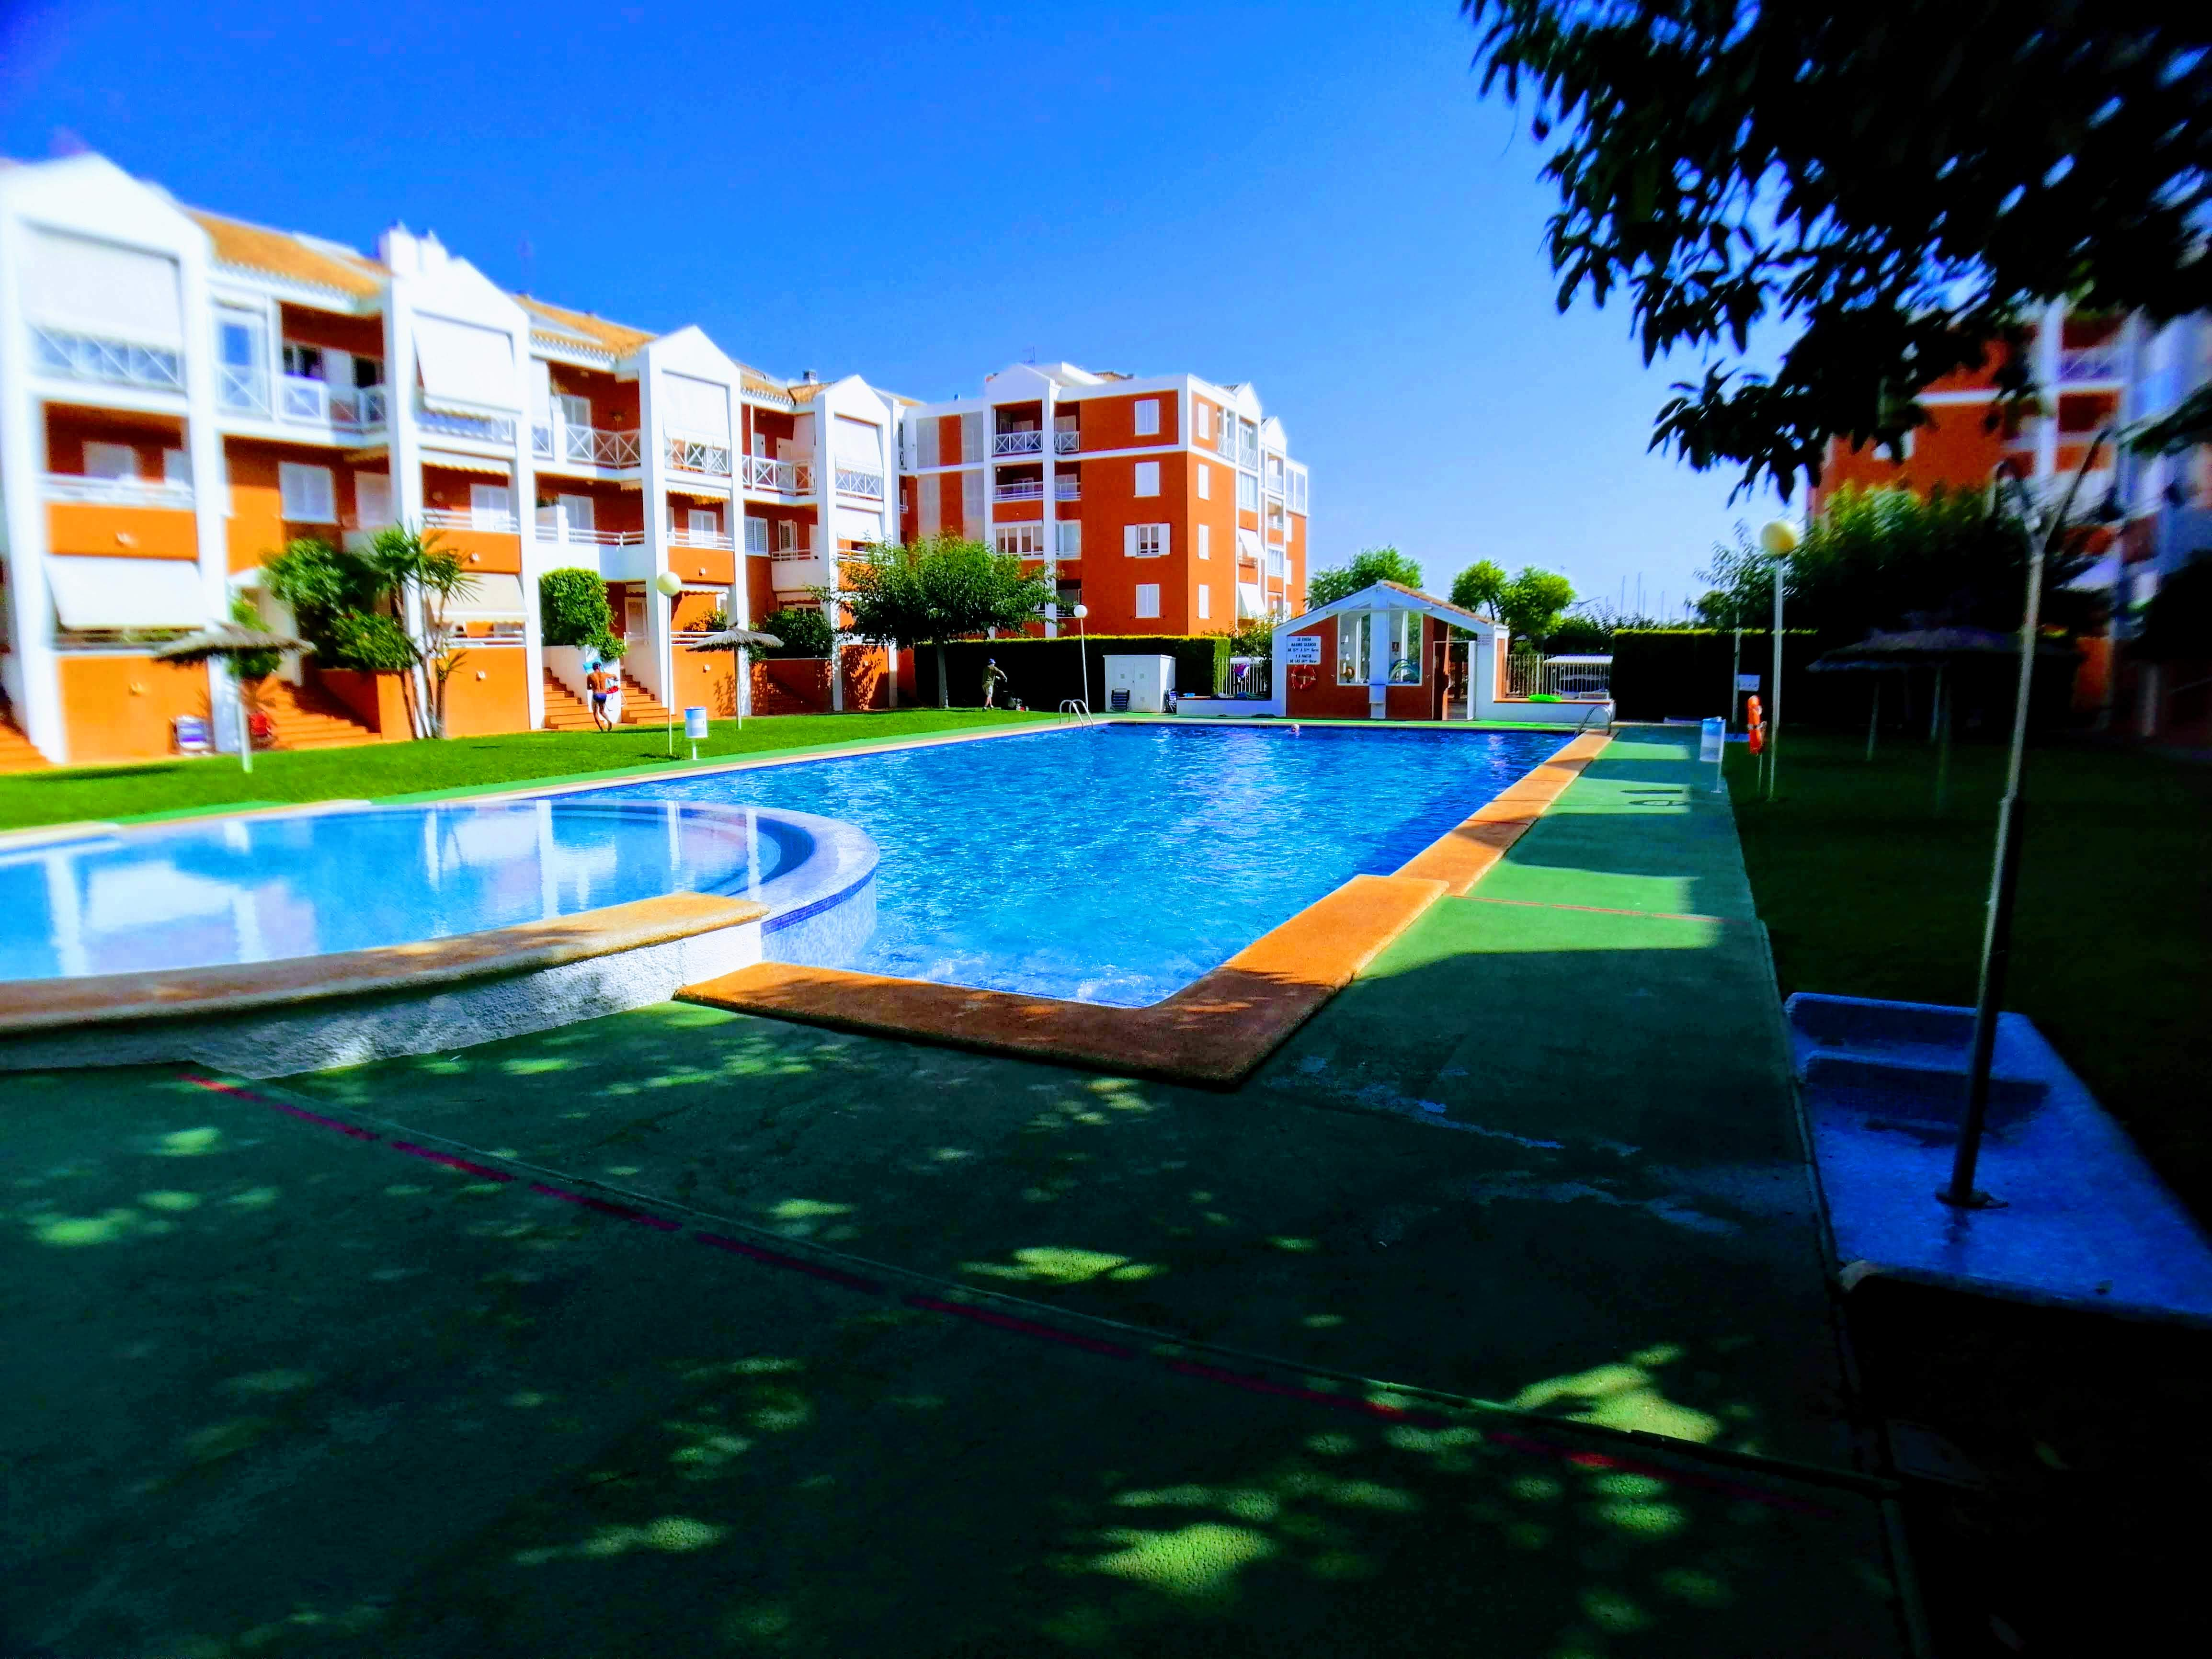 Apartment for rent near town centre and Club Nautica of Denia – Ref. 001023